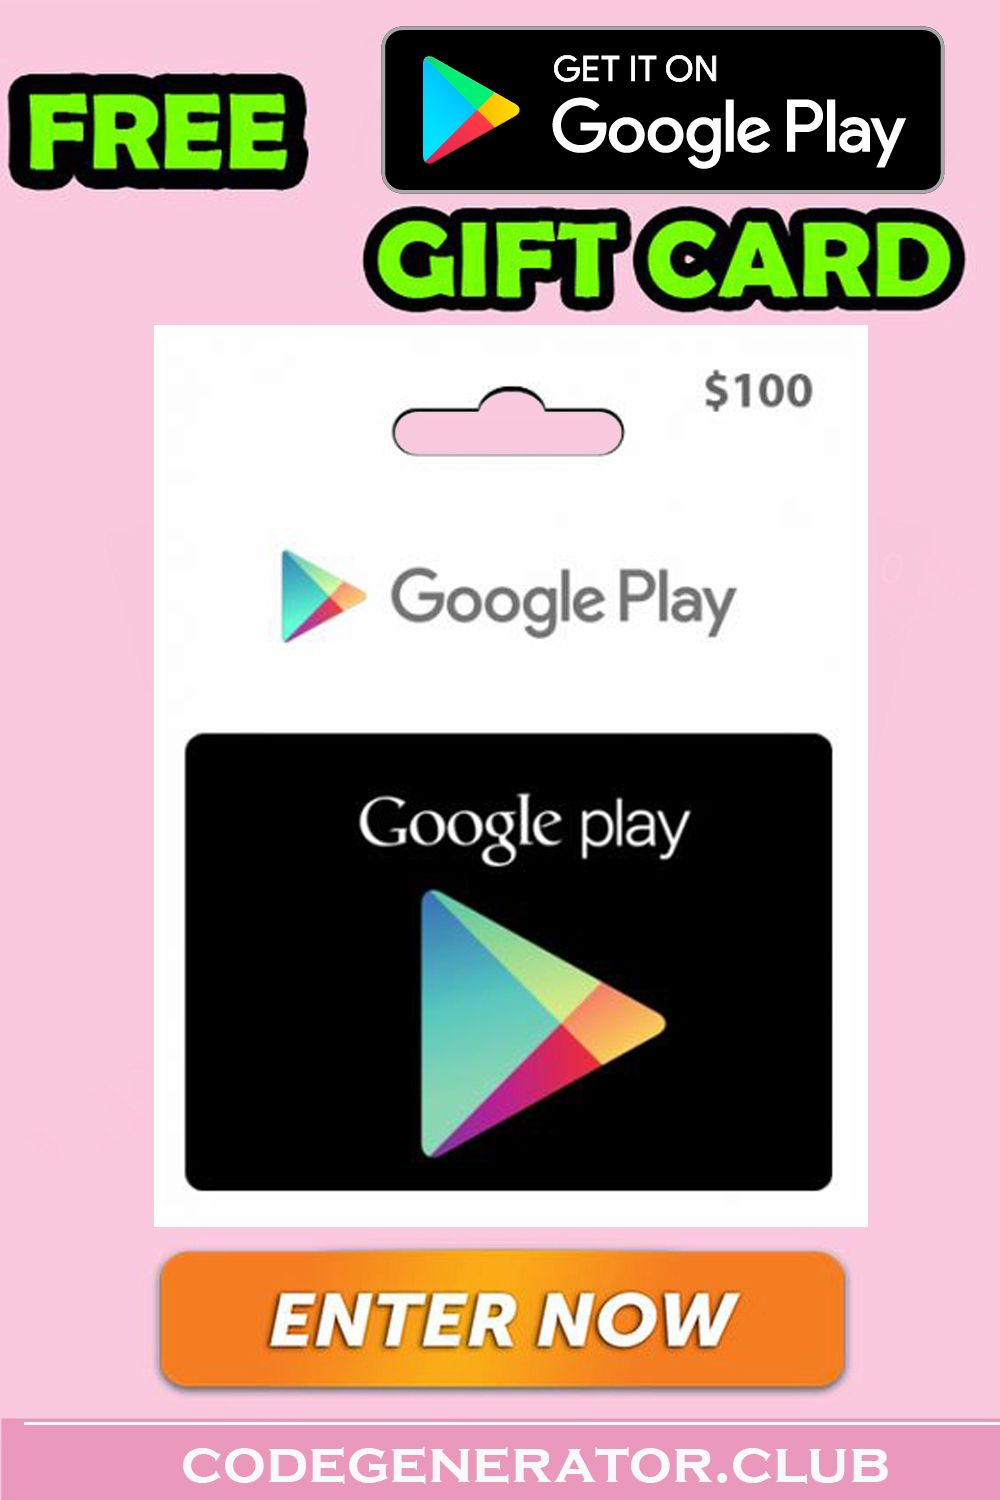 How To Get Free Google Play Gift Cards Google Play Gift Card Free Gift Cards Gift Card